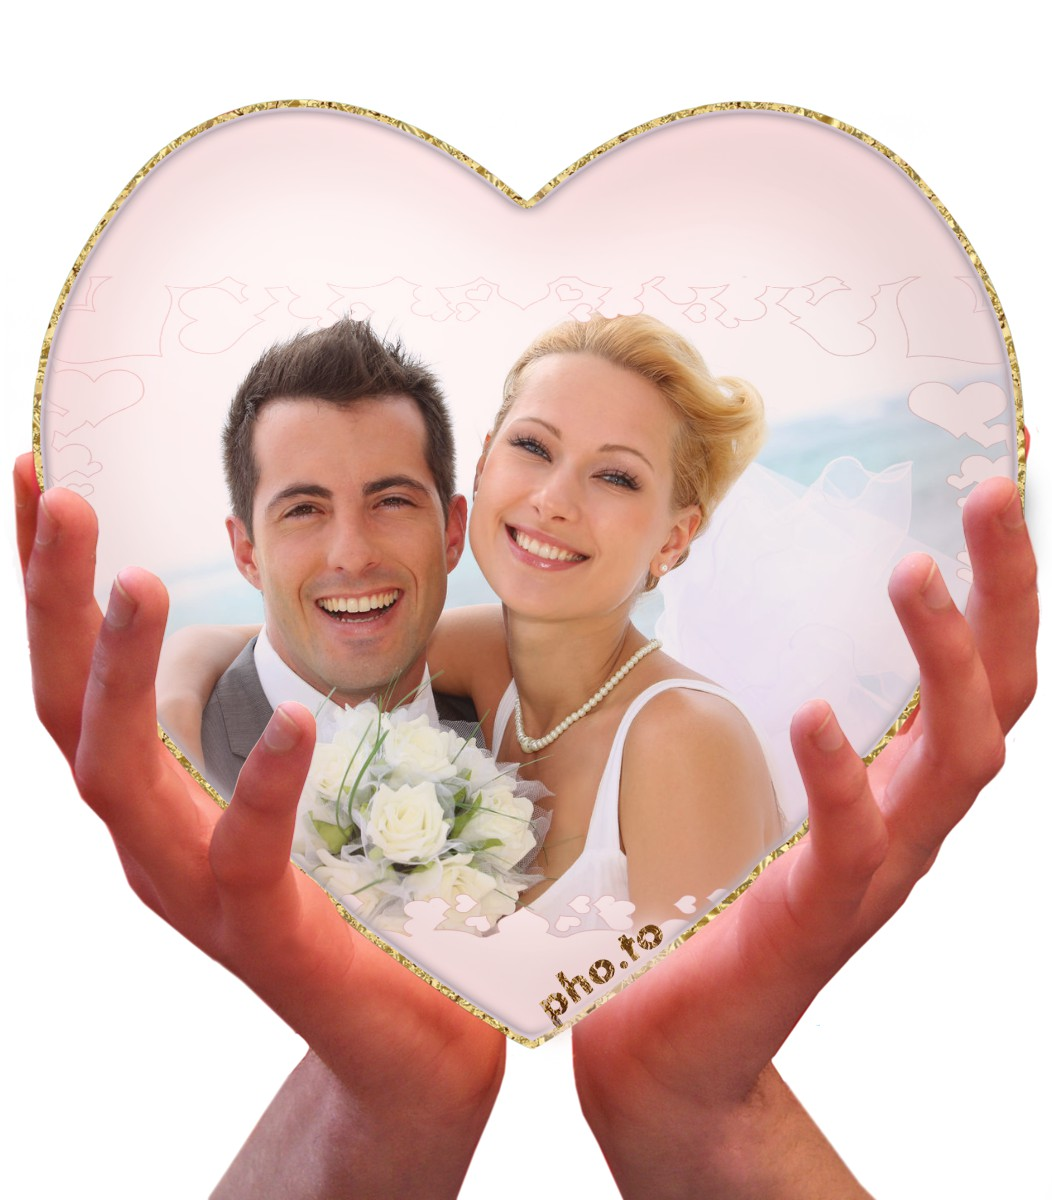 a wedding photo can get a more romantic look with a heart photo effect